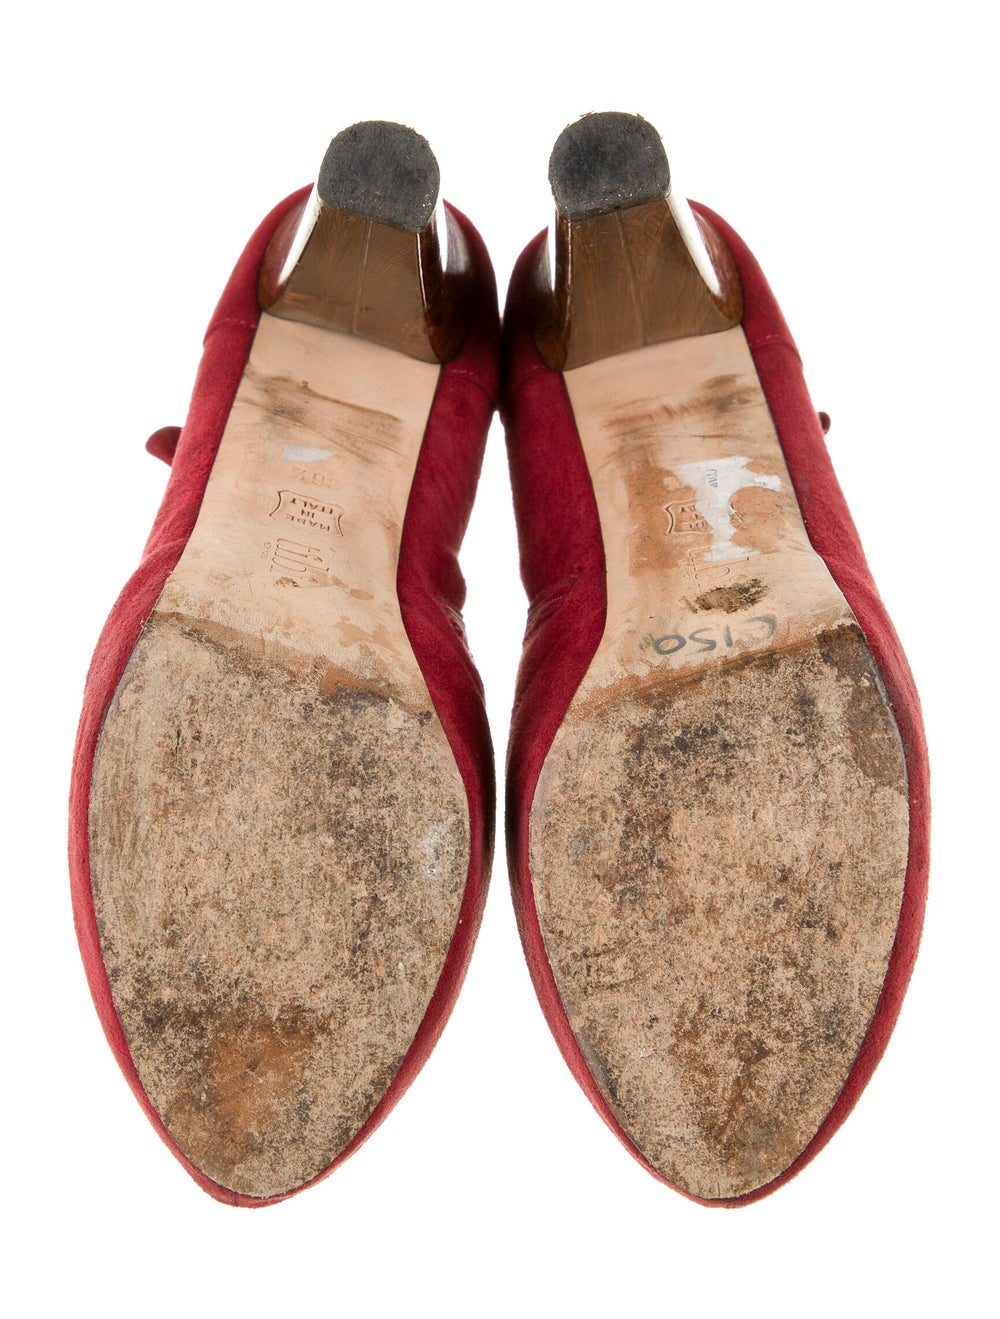 Tibi Suede Boots Red - image 5